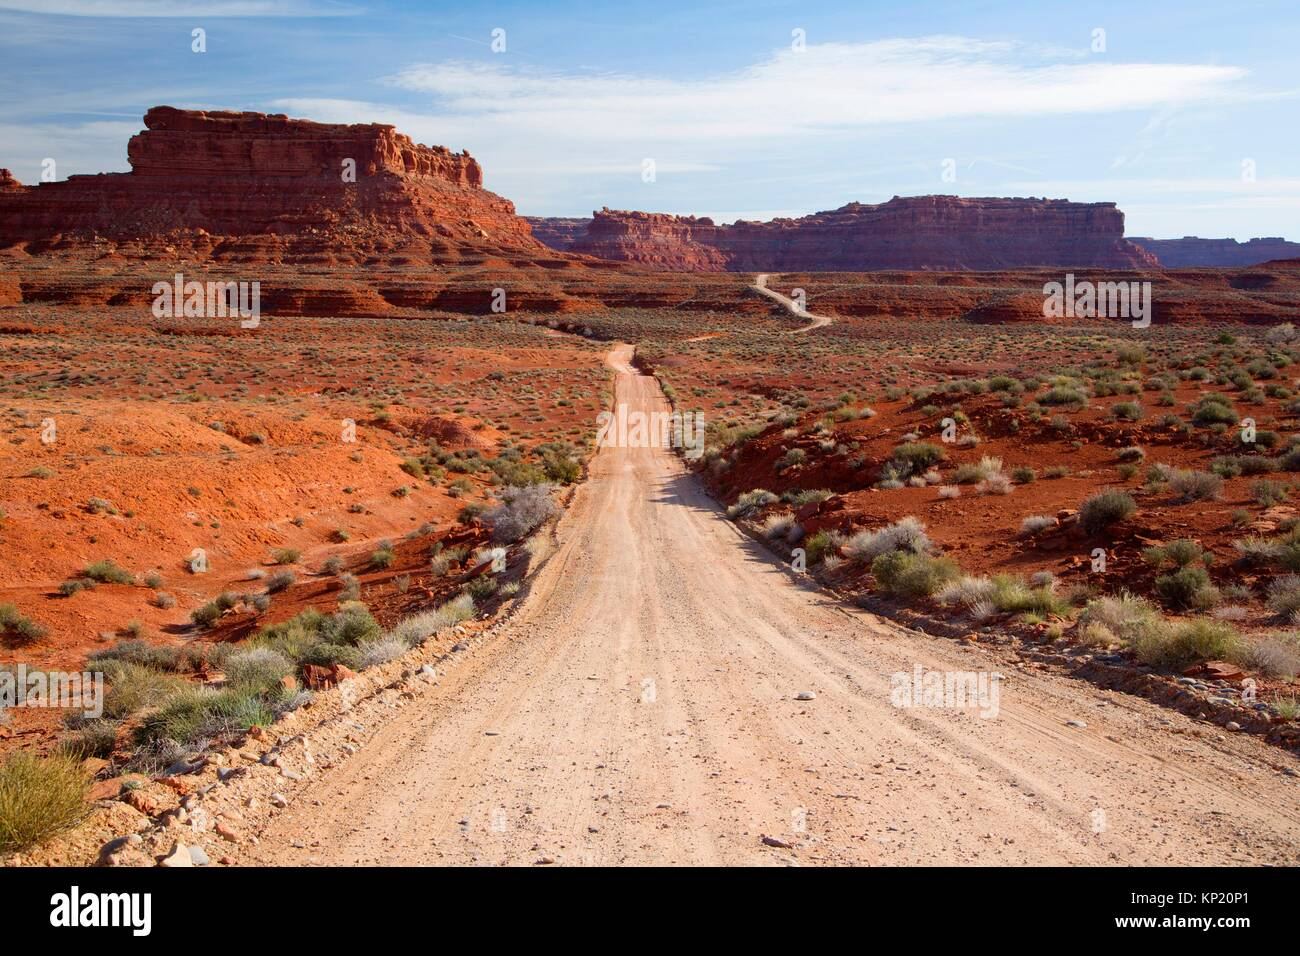 Dirt road, Valley of the Gods, Monticello Field Office Bureau of Land Management, Utah. Stock Photo